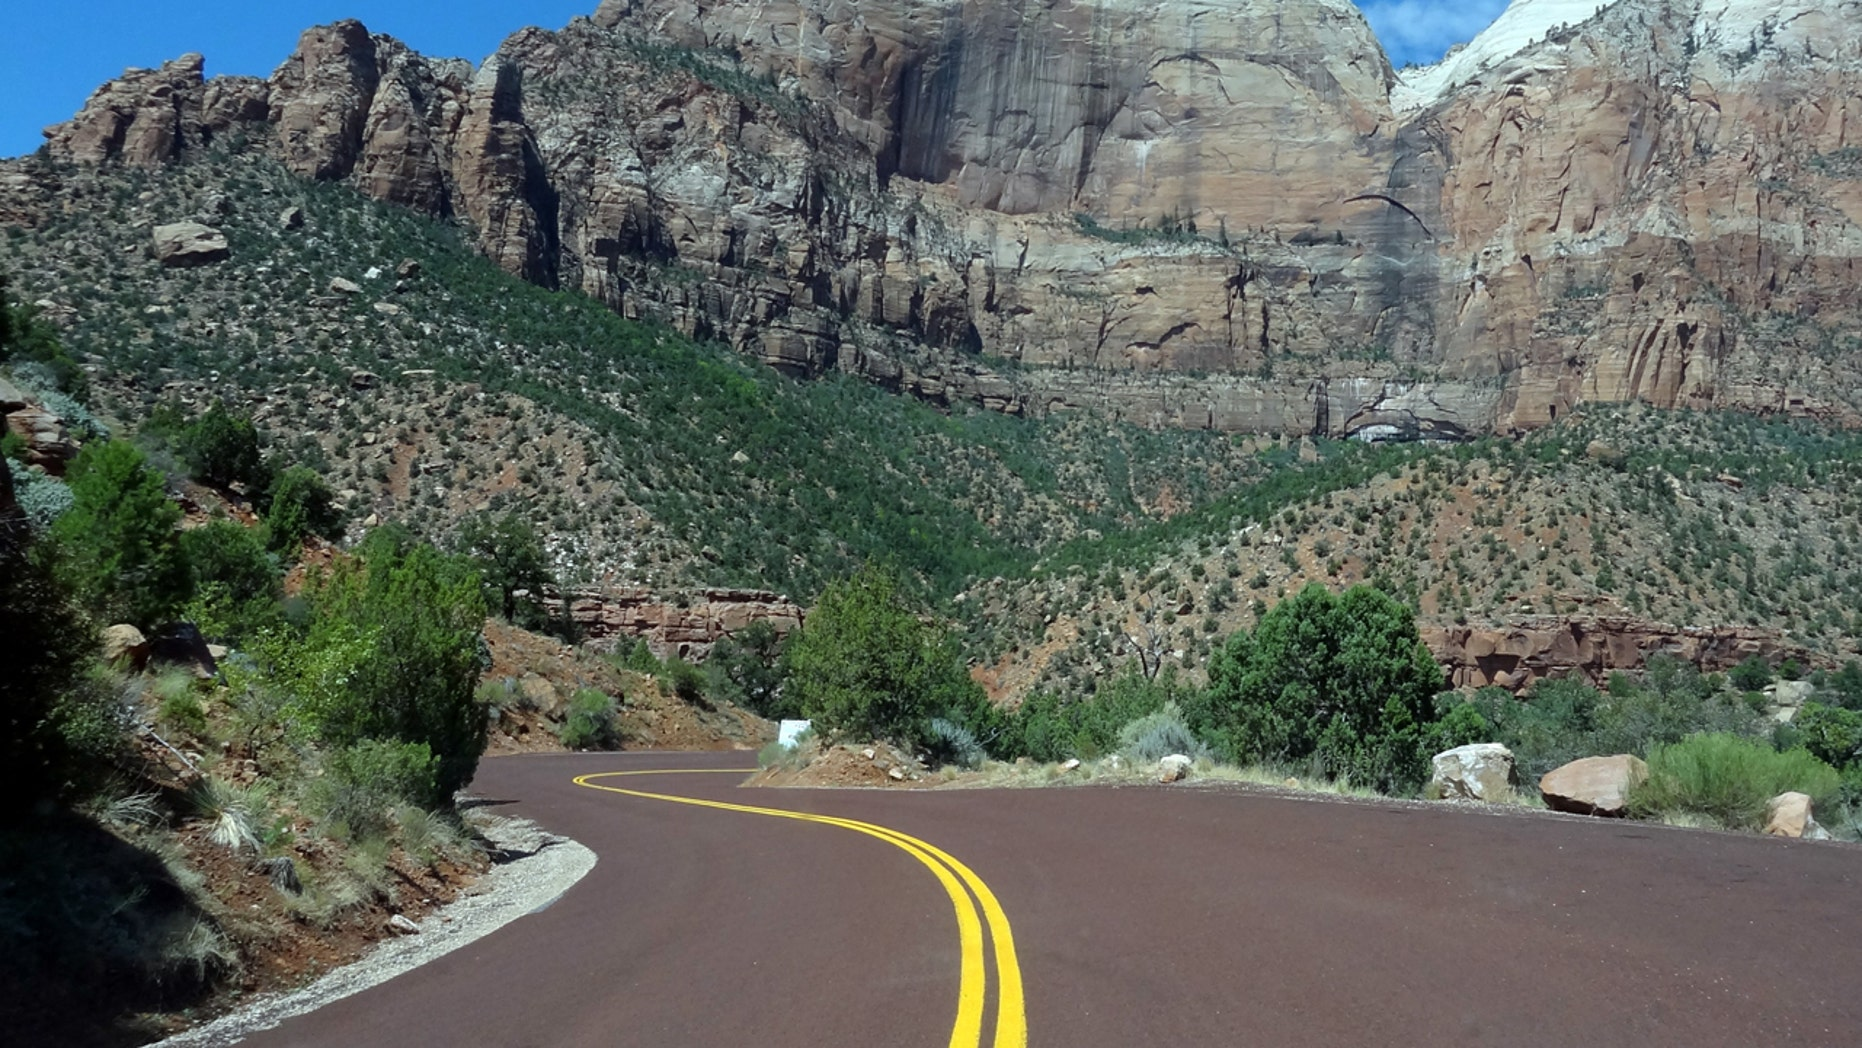 FILE: General view from the State Road 9 as it passes through the Zion national park.